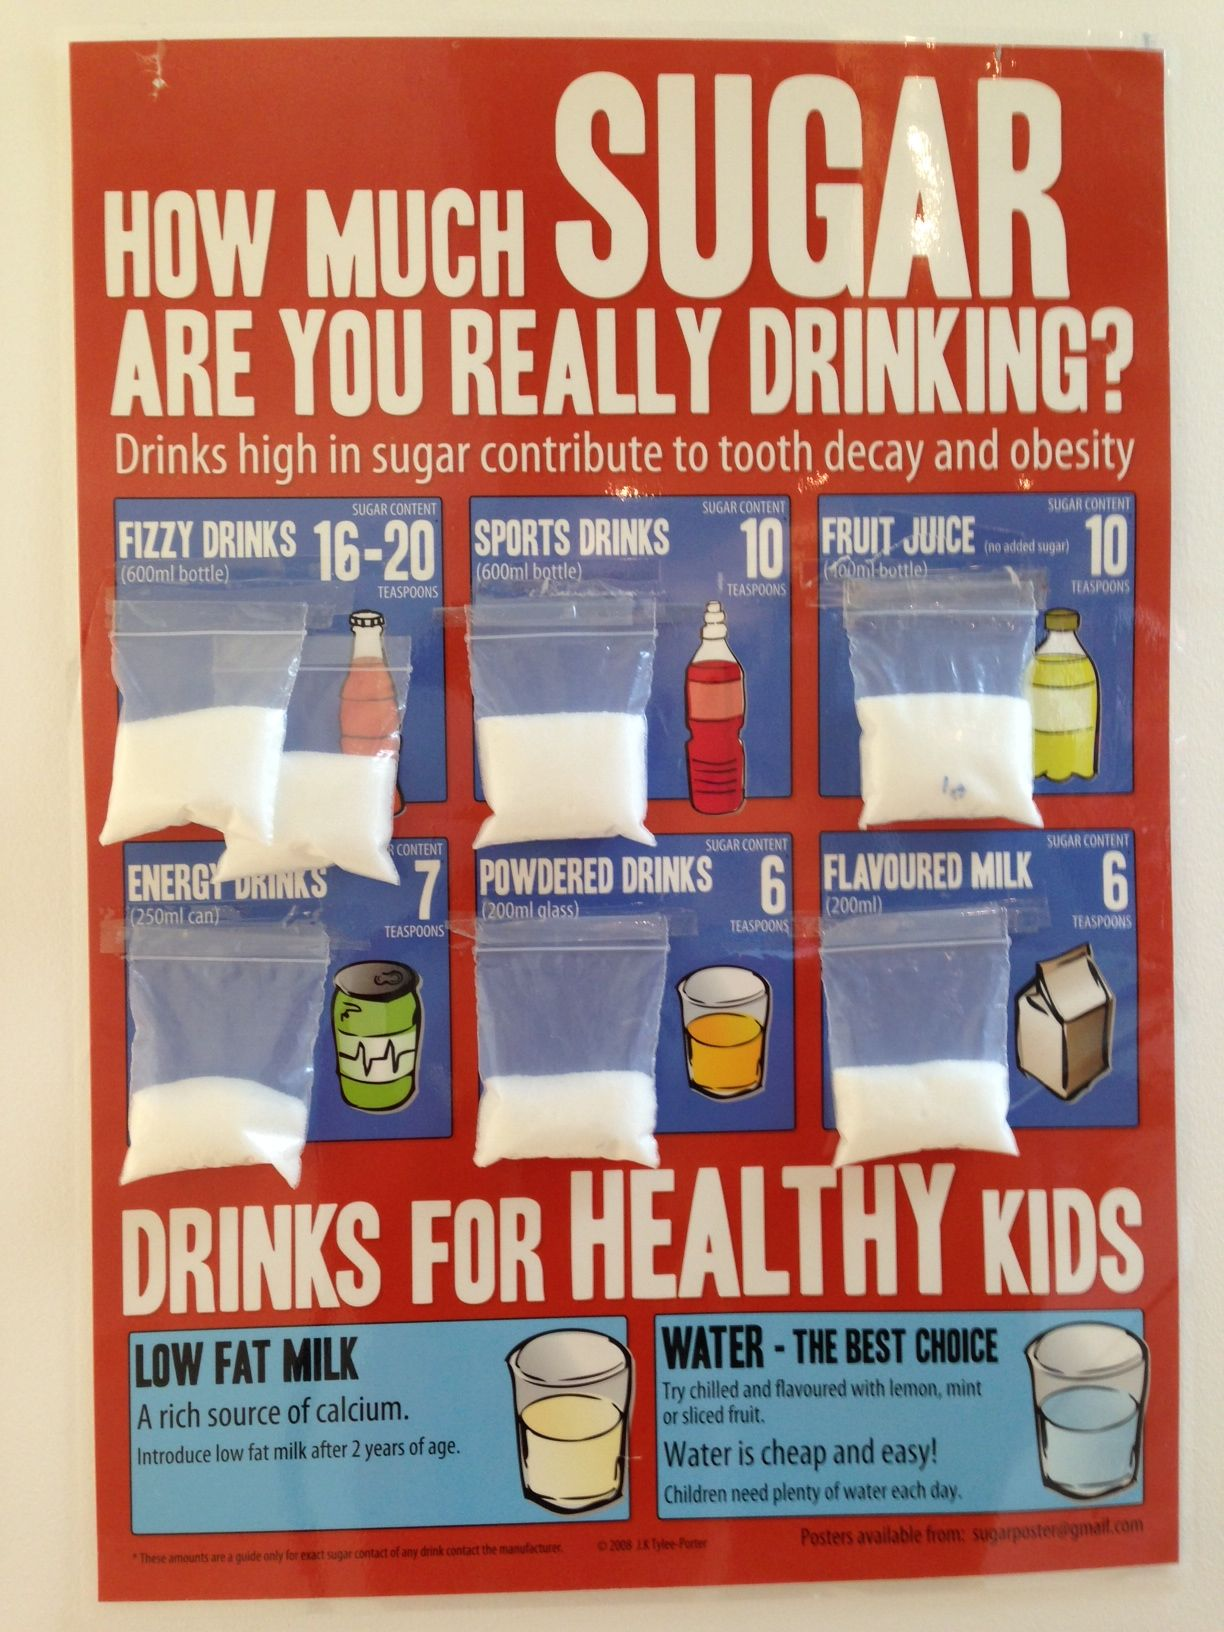 Citizens' Jury In Australia Supports A Tax On Soft Drinks